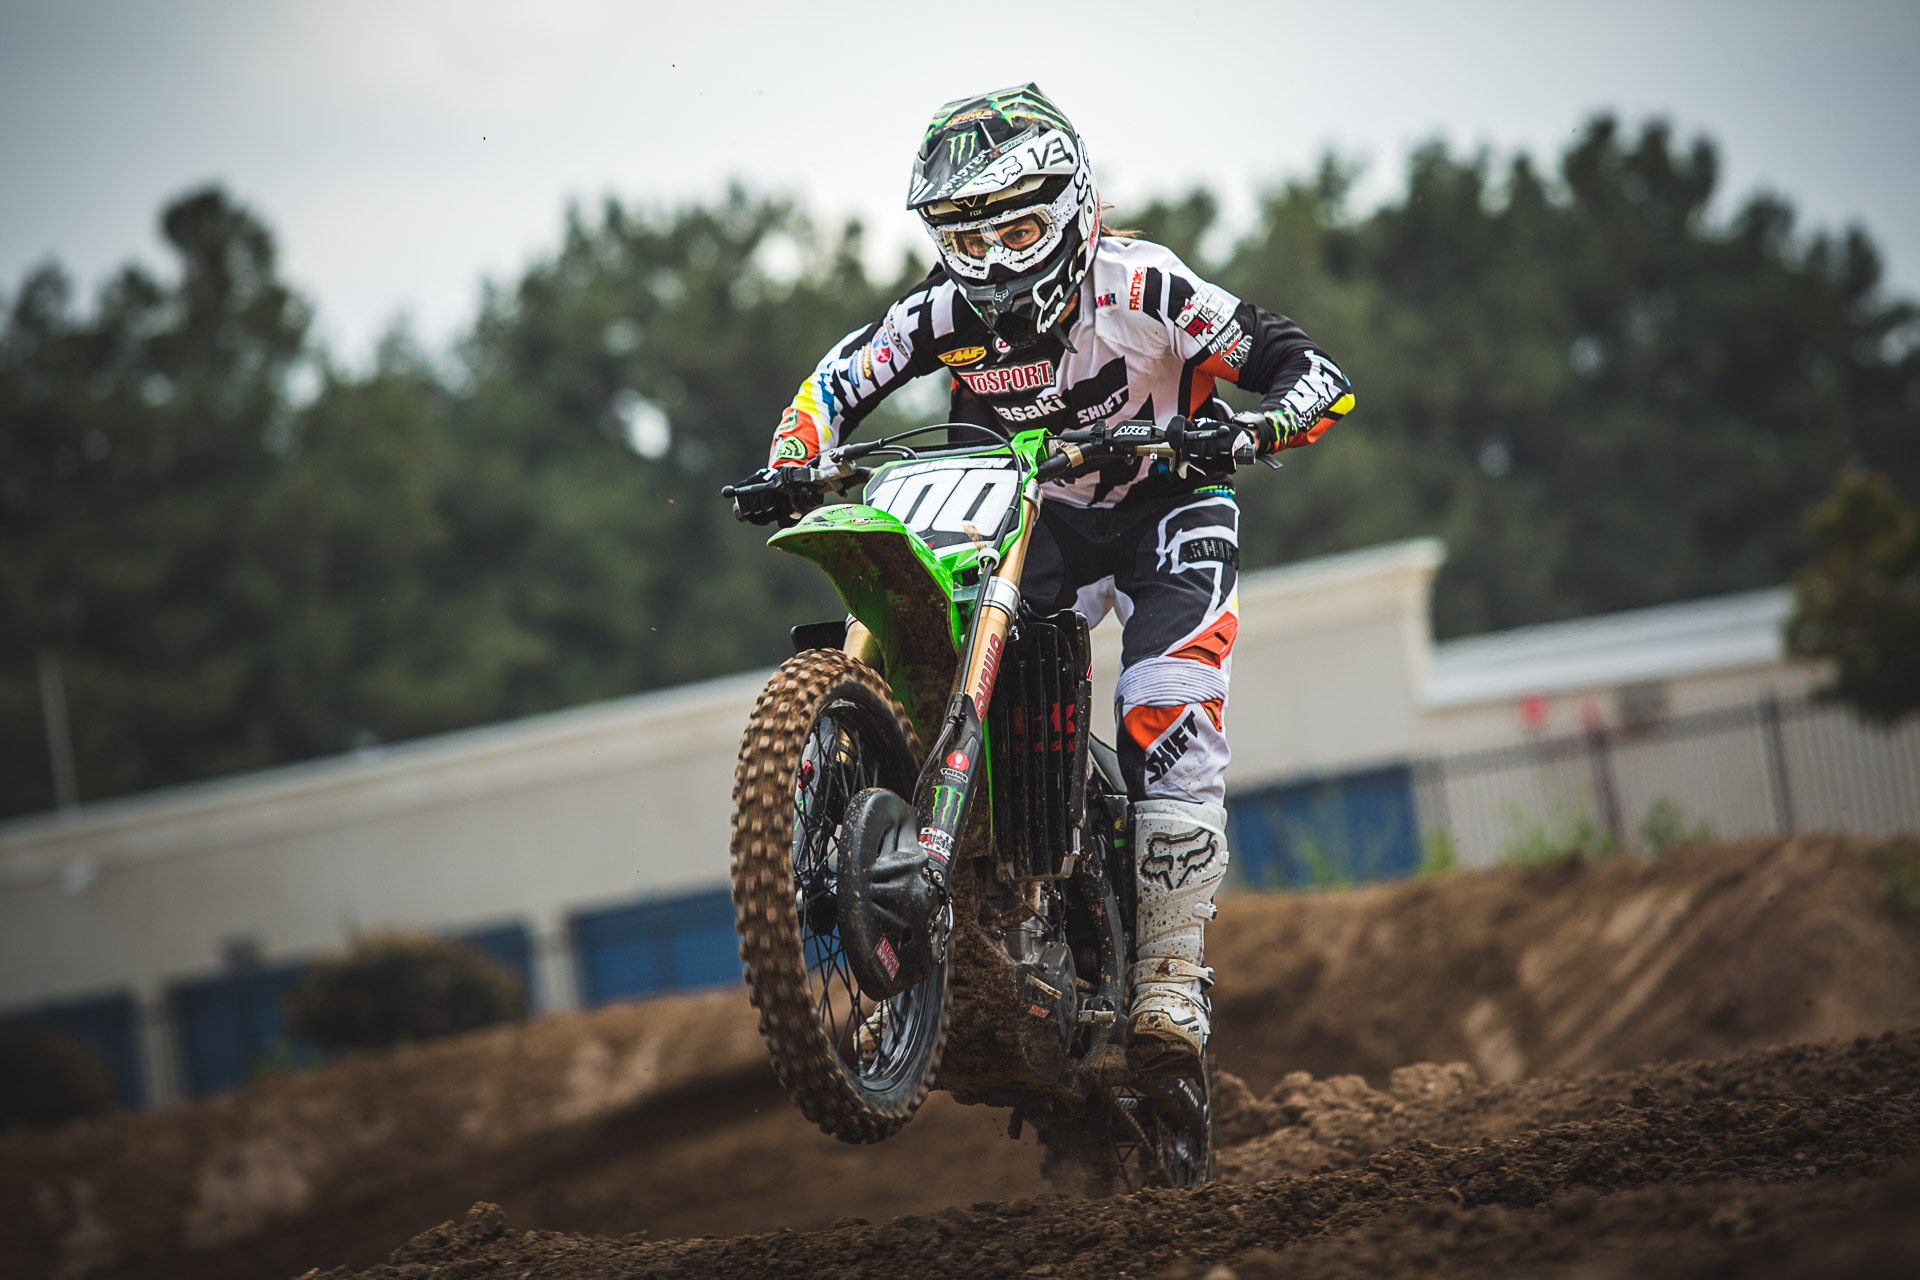 josh_hansen_photo_jimmy_Bowron_2281.jpg